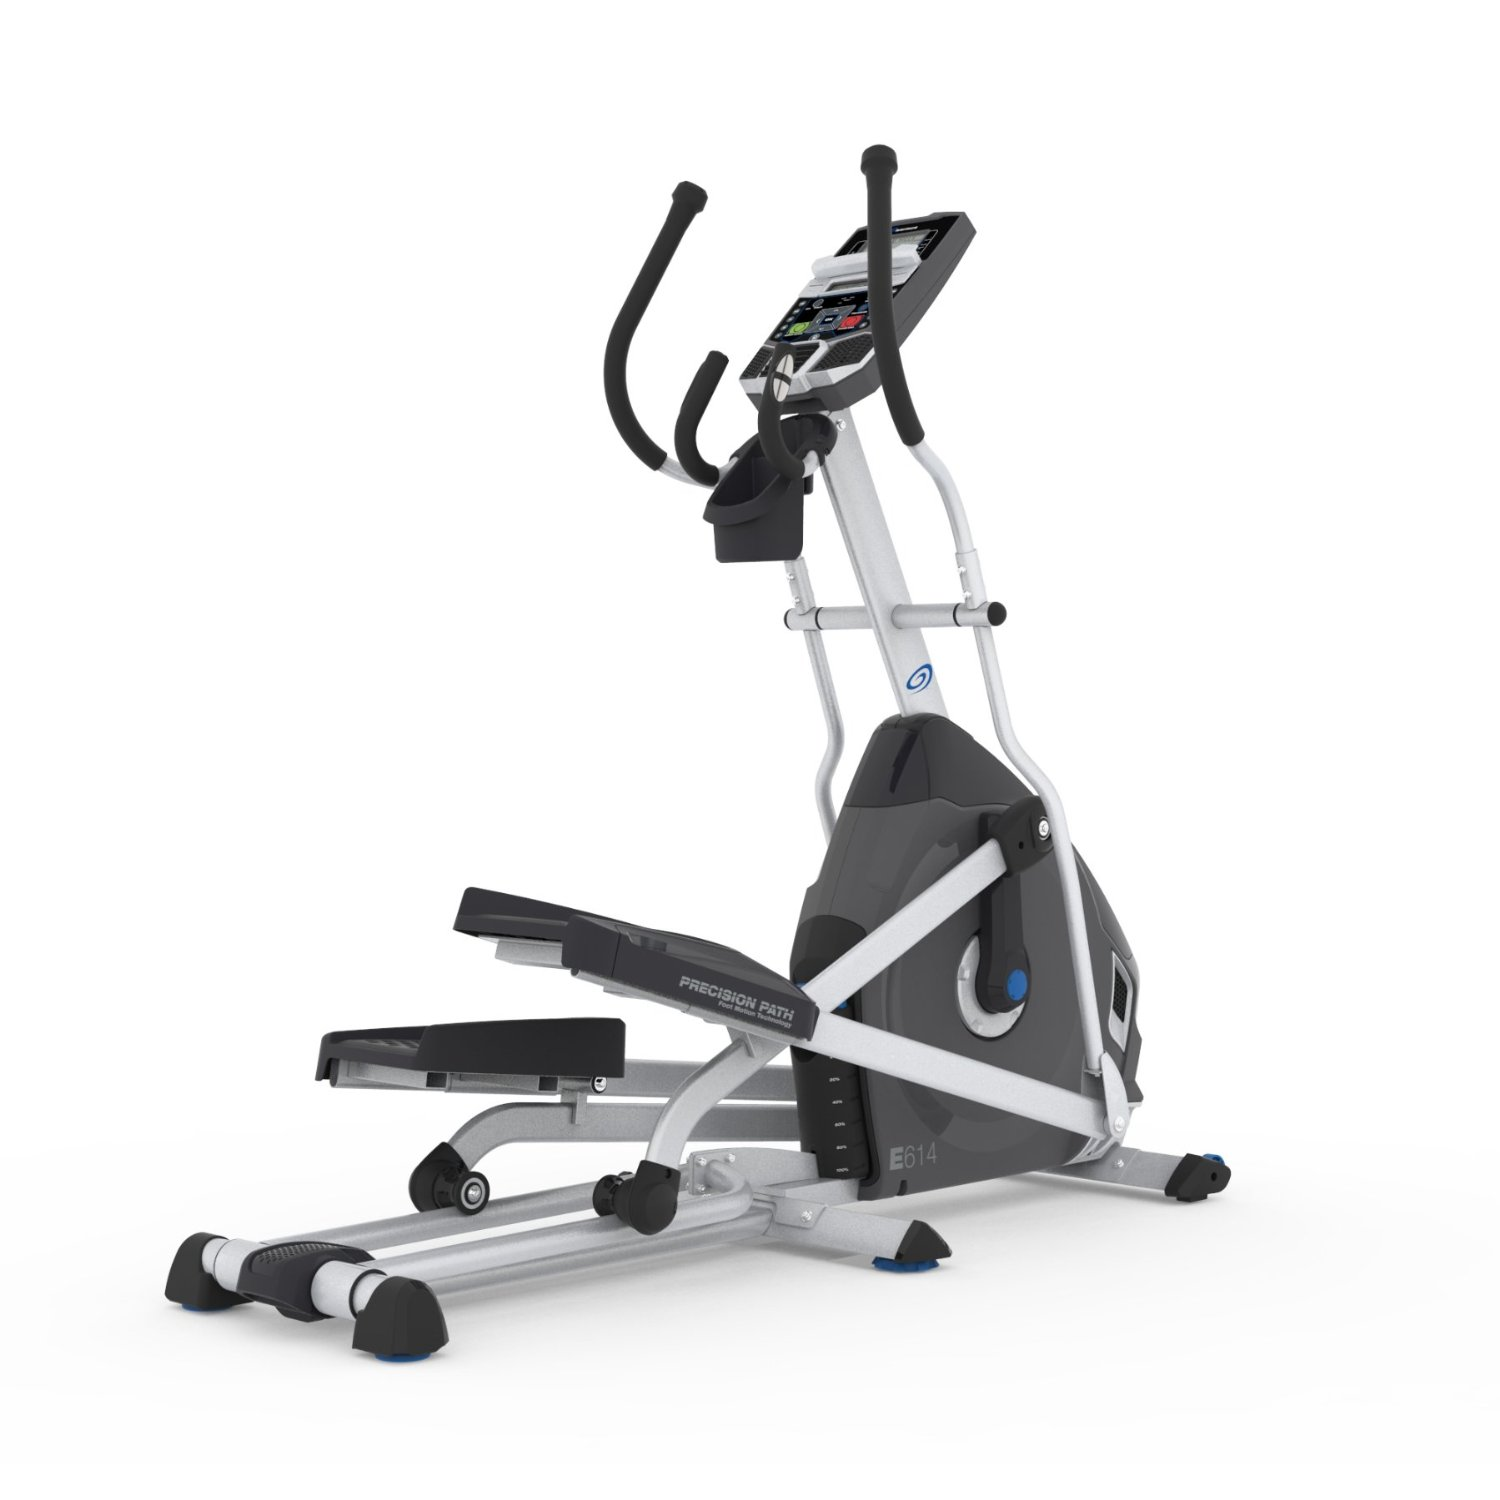 Nautilus E614 Elliptical Trainer Review , Nautilus E614 Elliptical Review